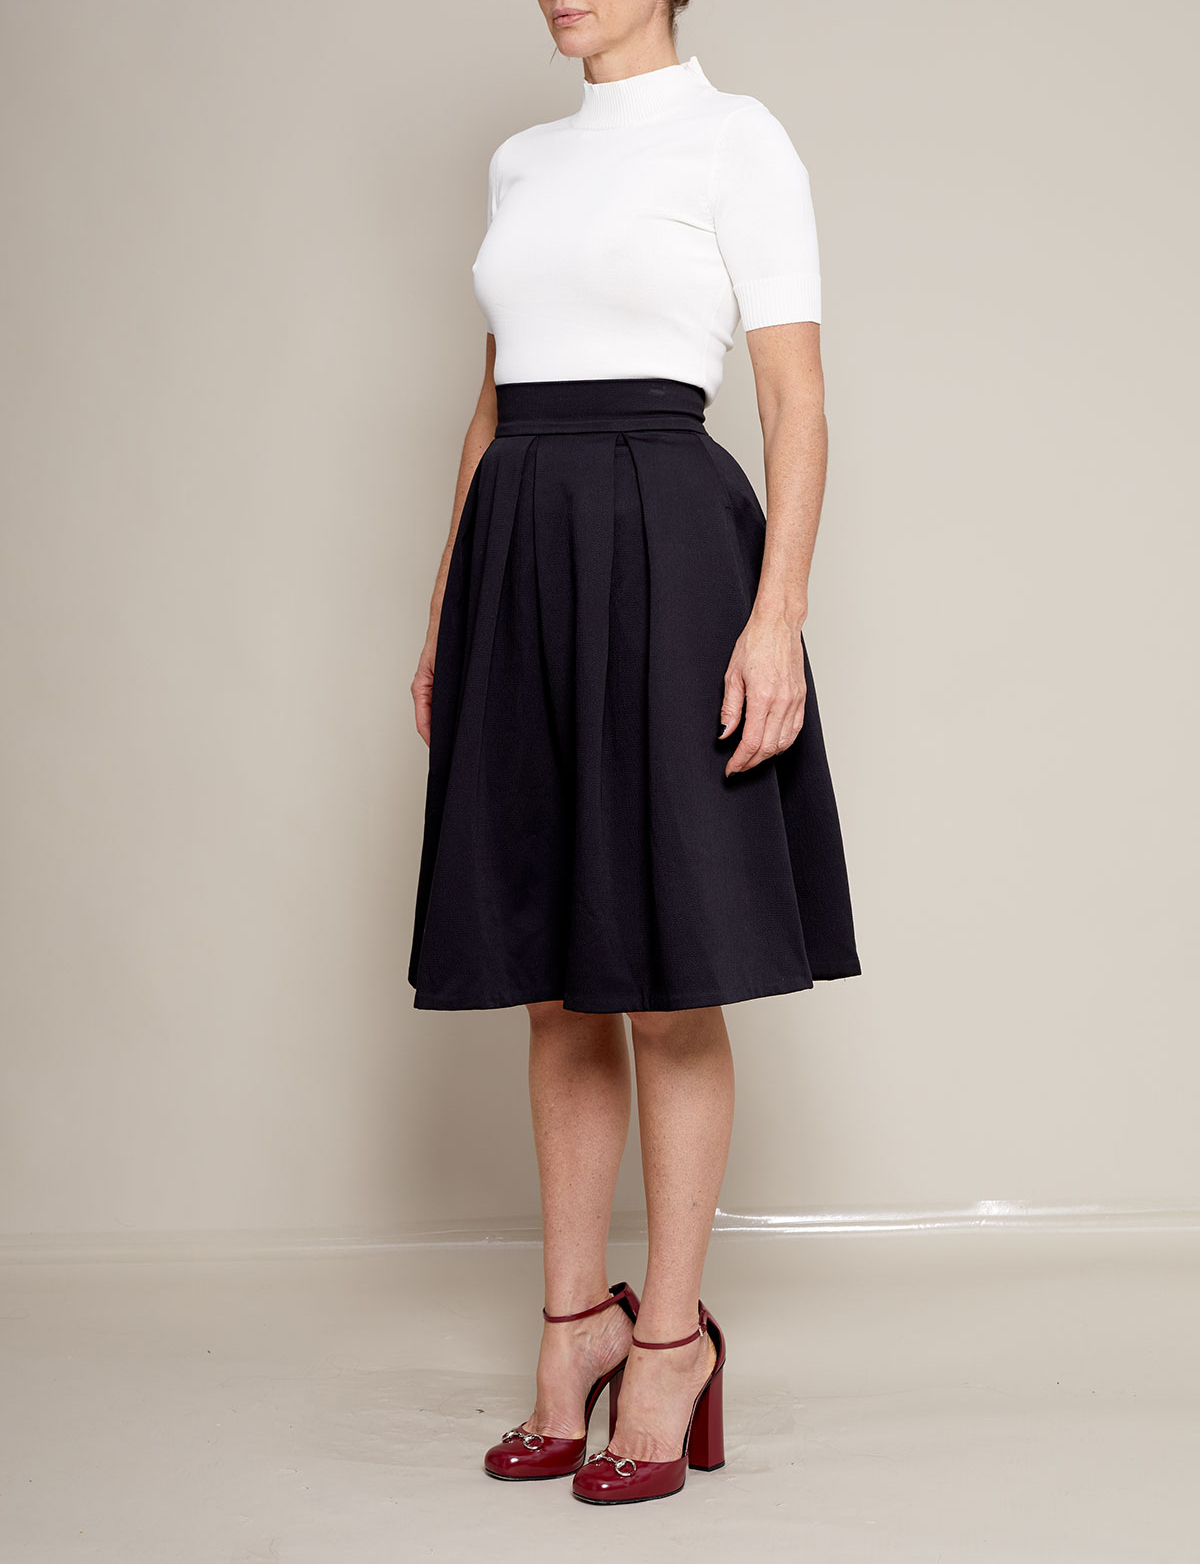 Just Patterns Stephanie Skirt 2.jpg